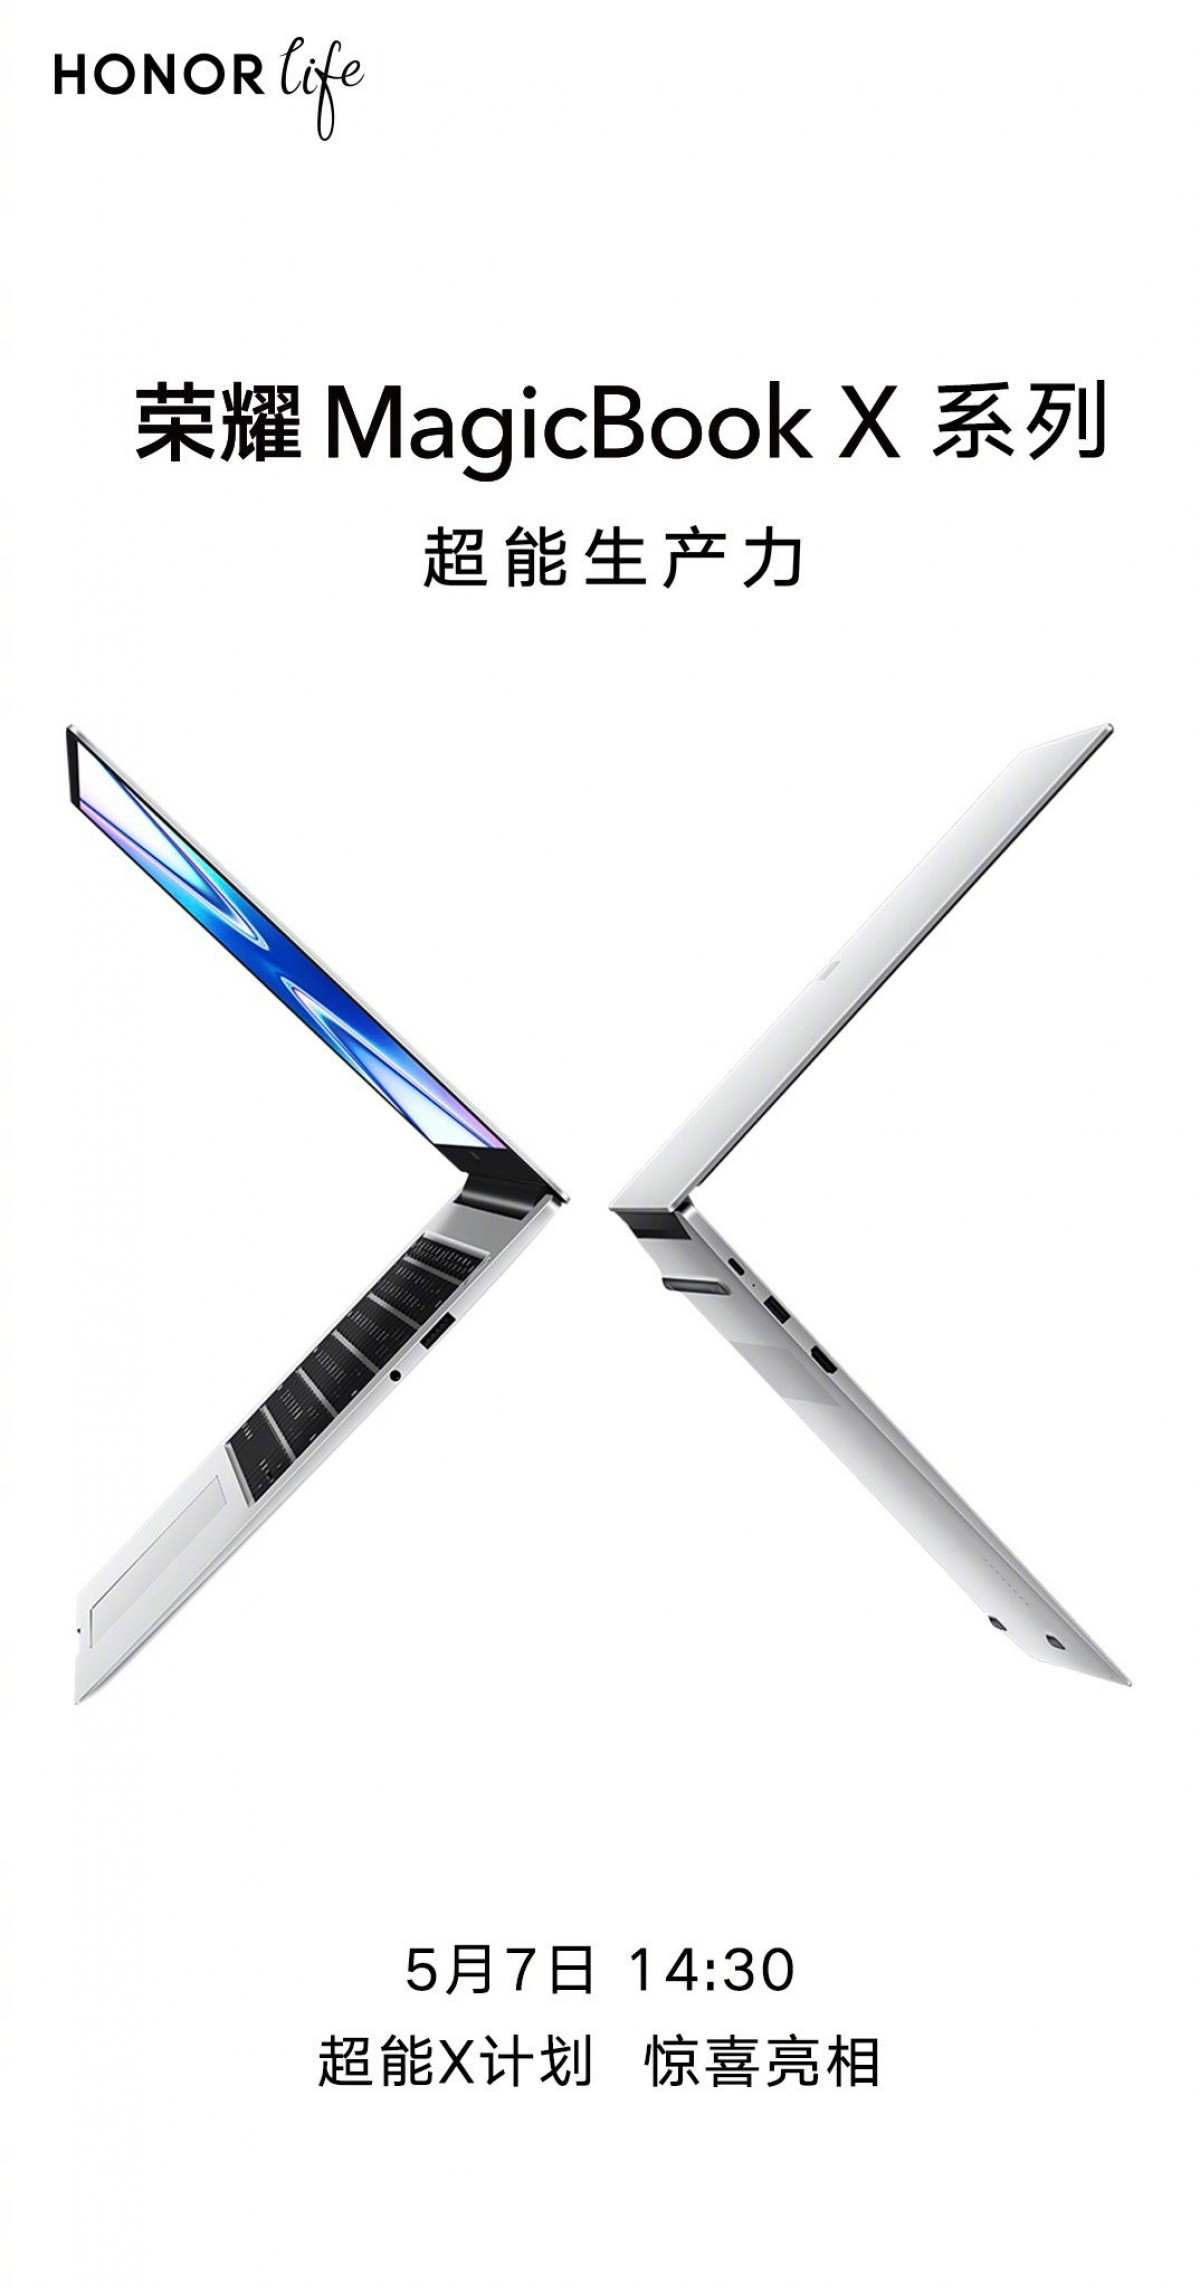 Honor to introduce MagicBook X series on May 7